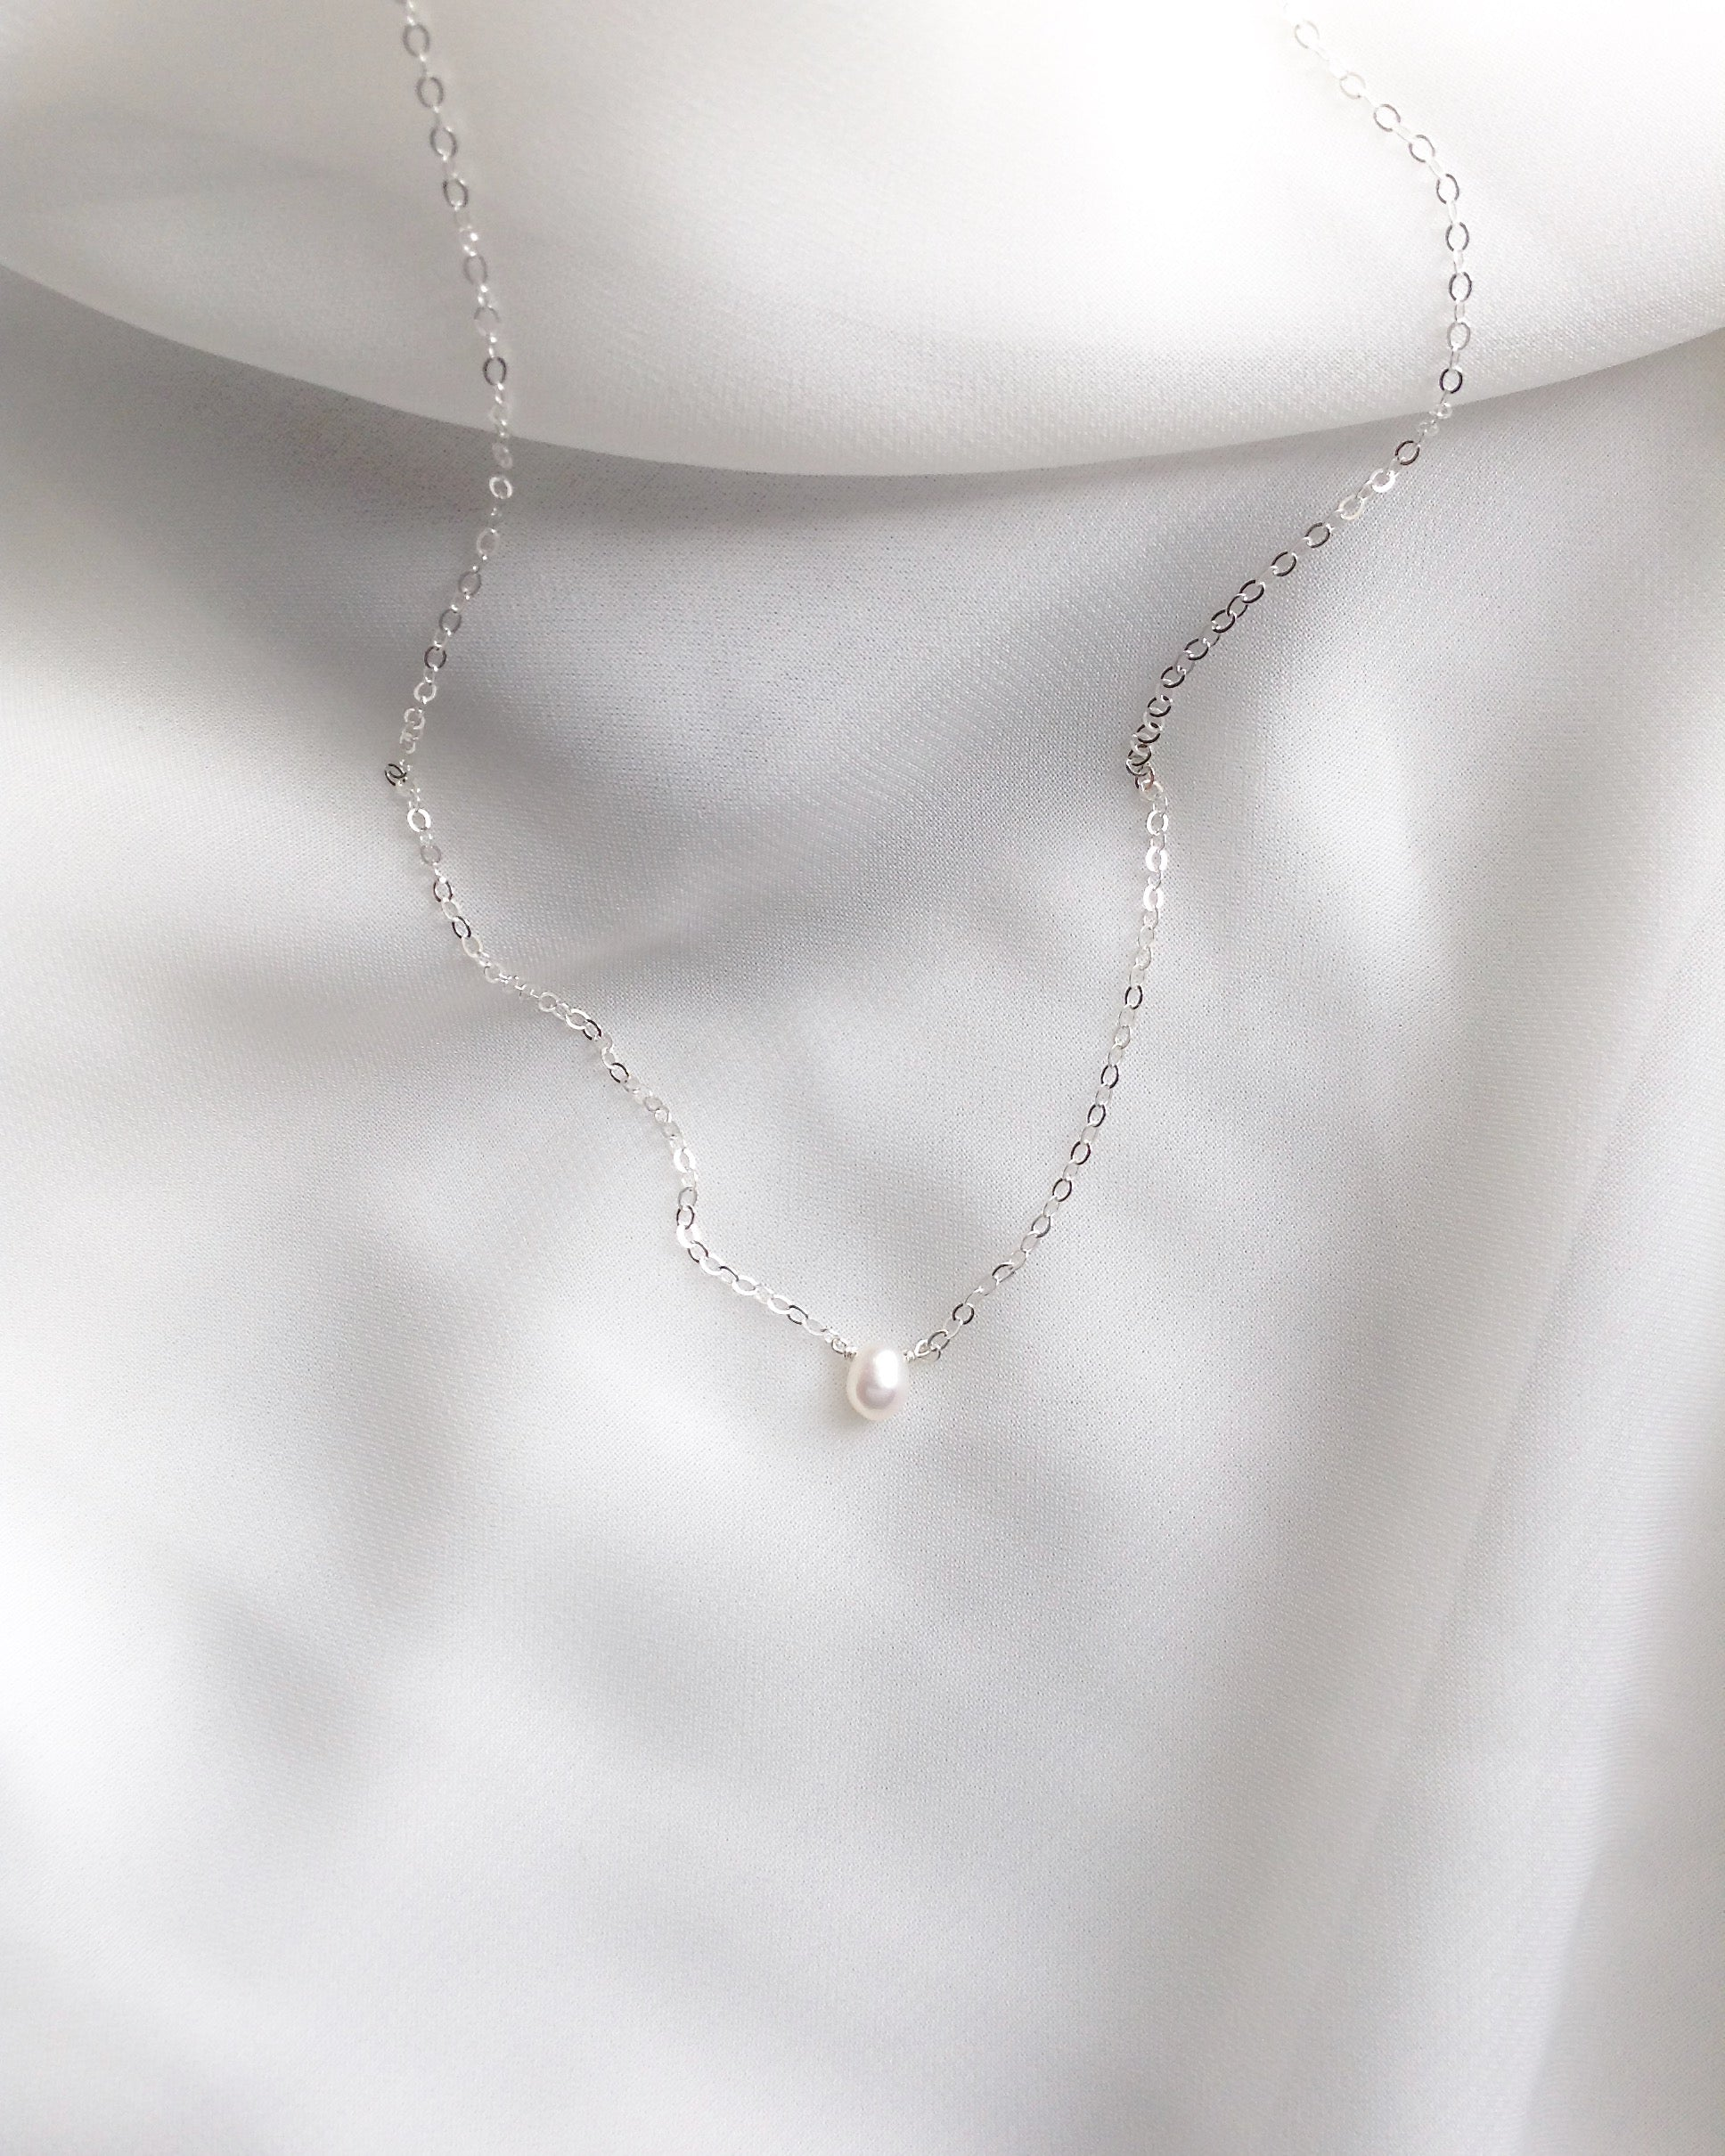 Delicate Pearl Choker Necklace | Simple Everyday Choker | IB Jewelry